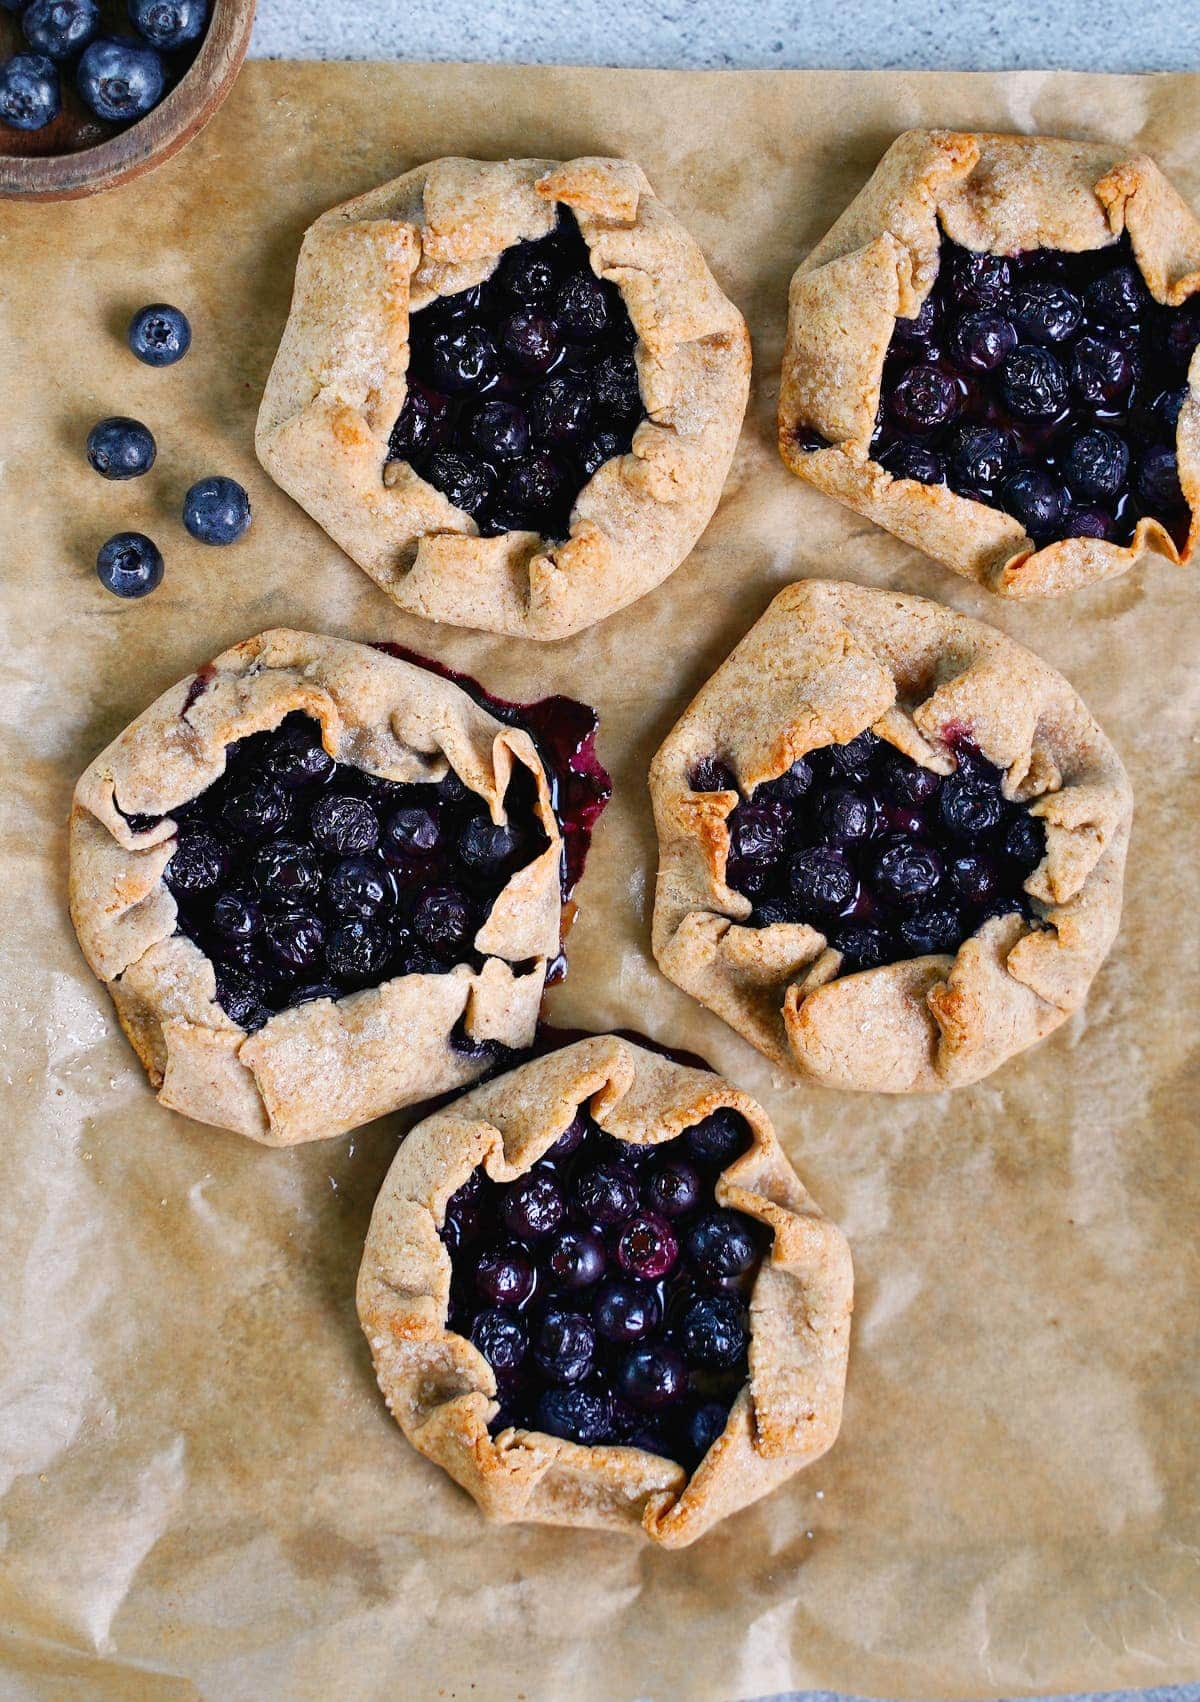 5 baked mini galettes with blueberries